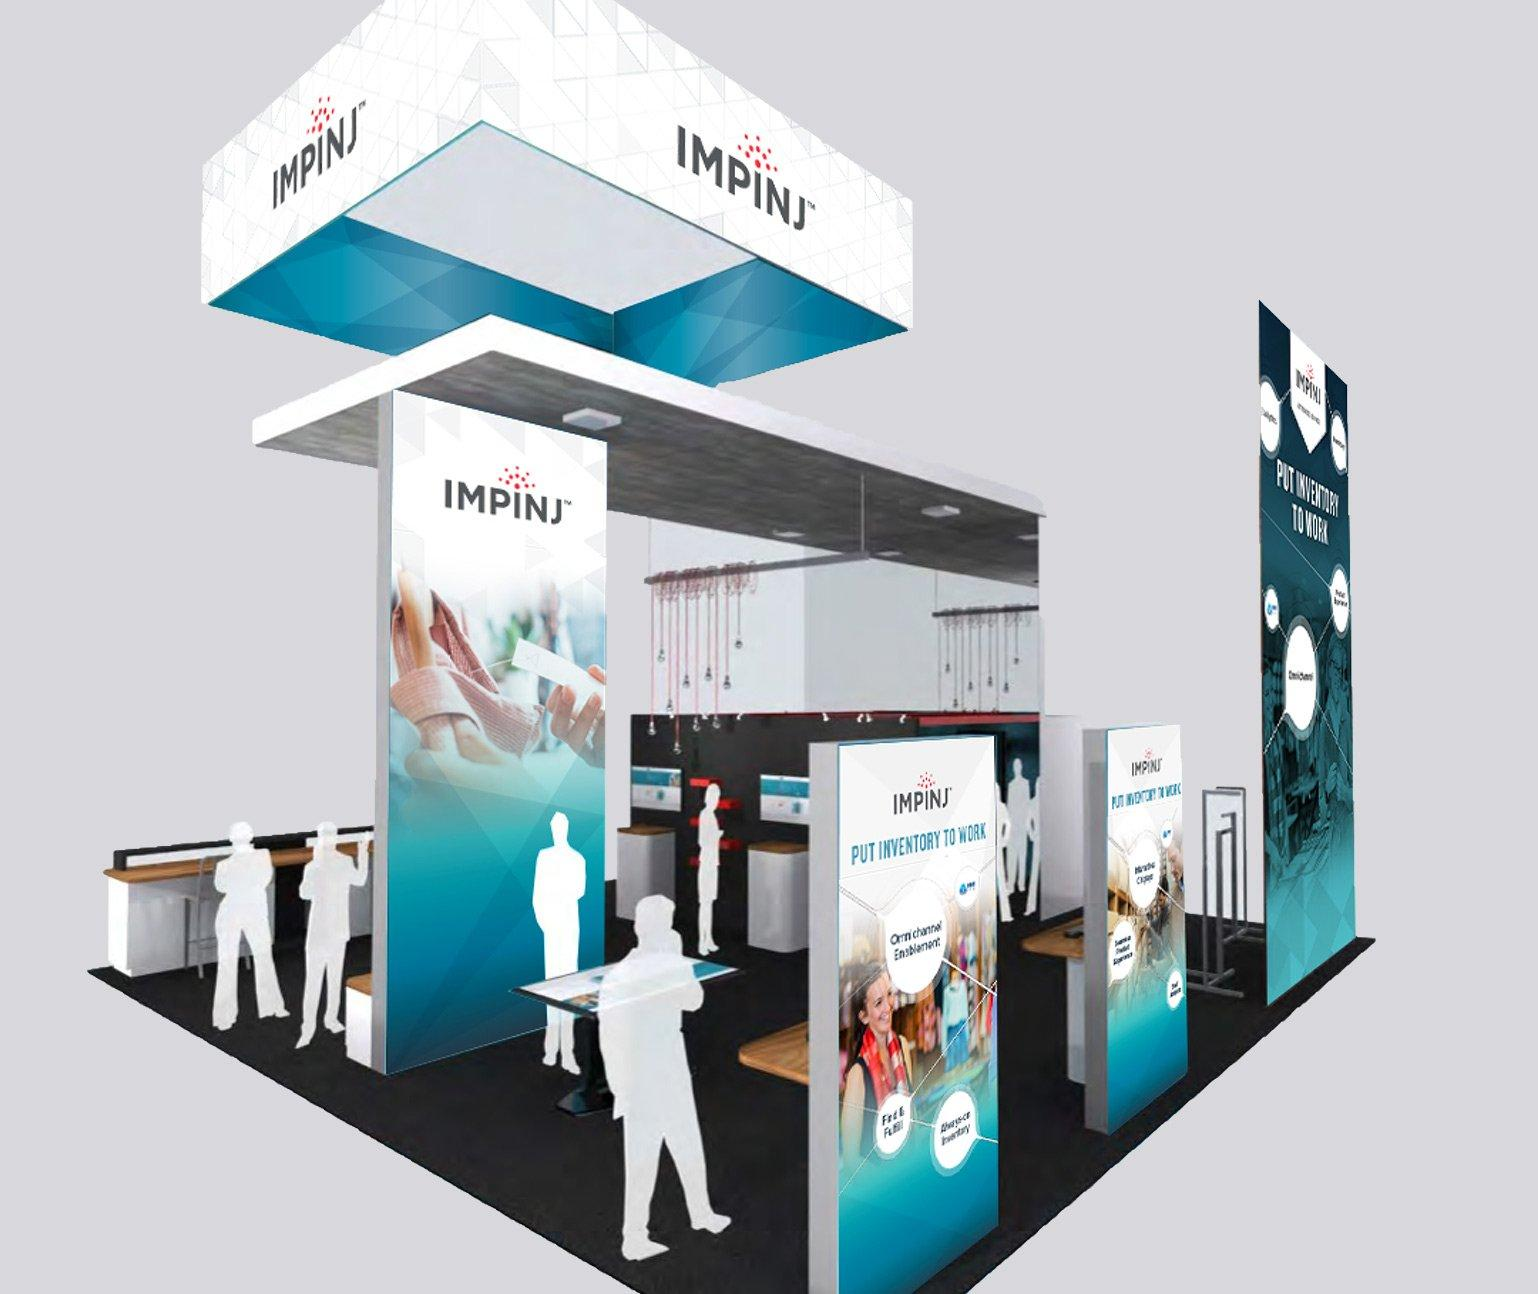 Impinj tradeshow booth in 3D rendering